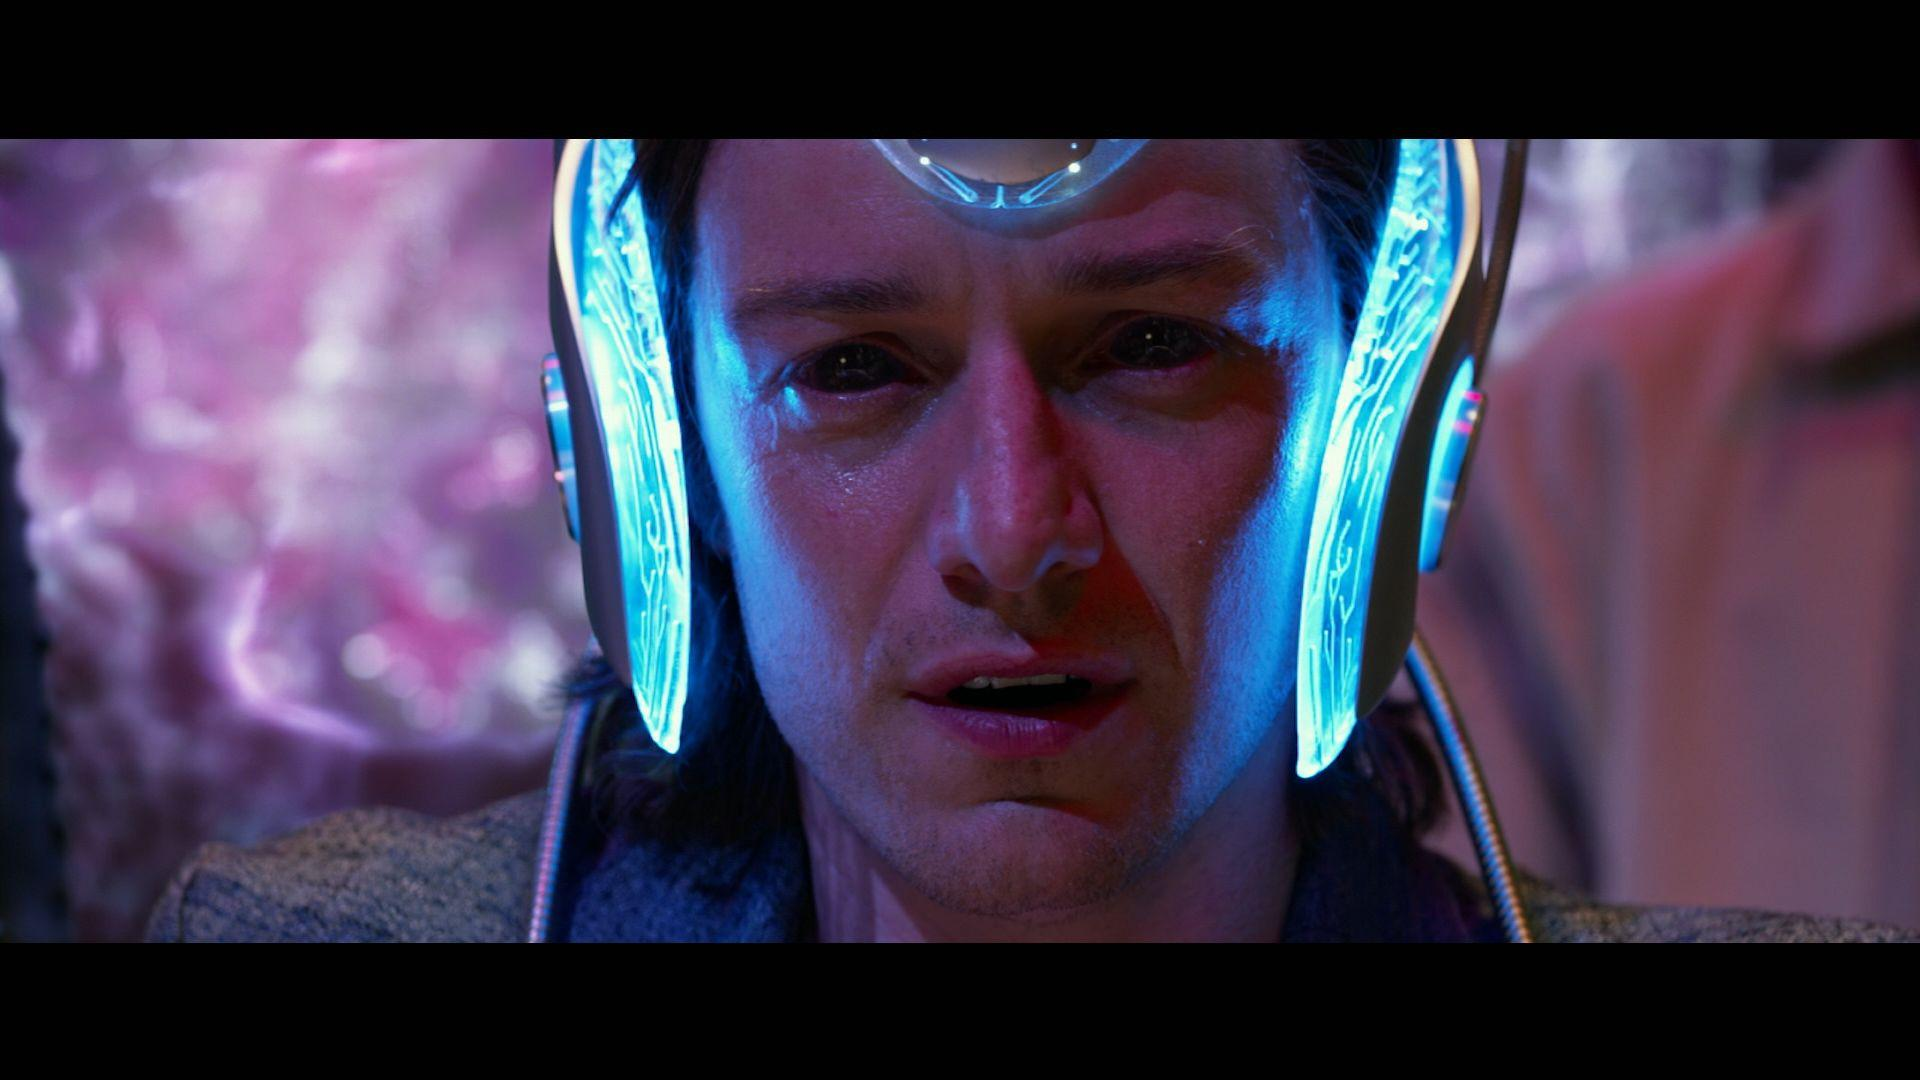 Our Very Own 'X-Men: Apocalypse' Red Band Trailer - Parody